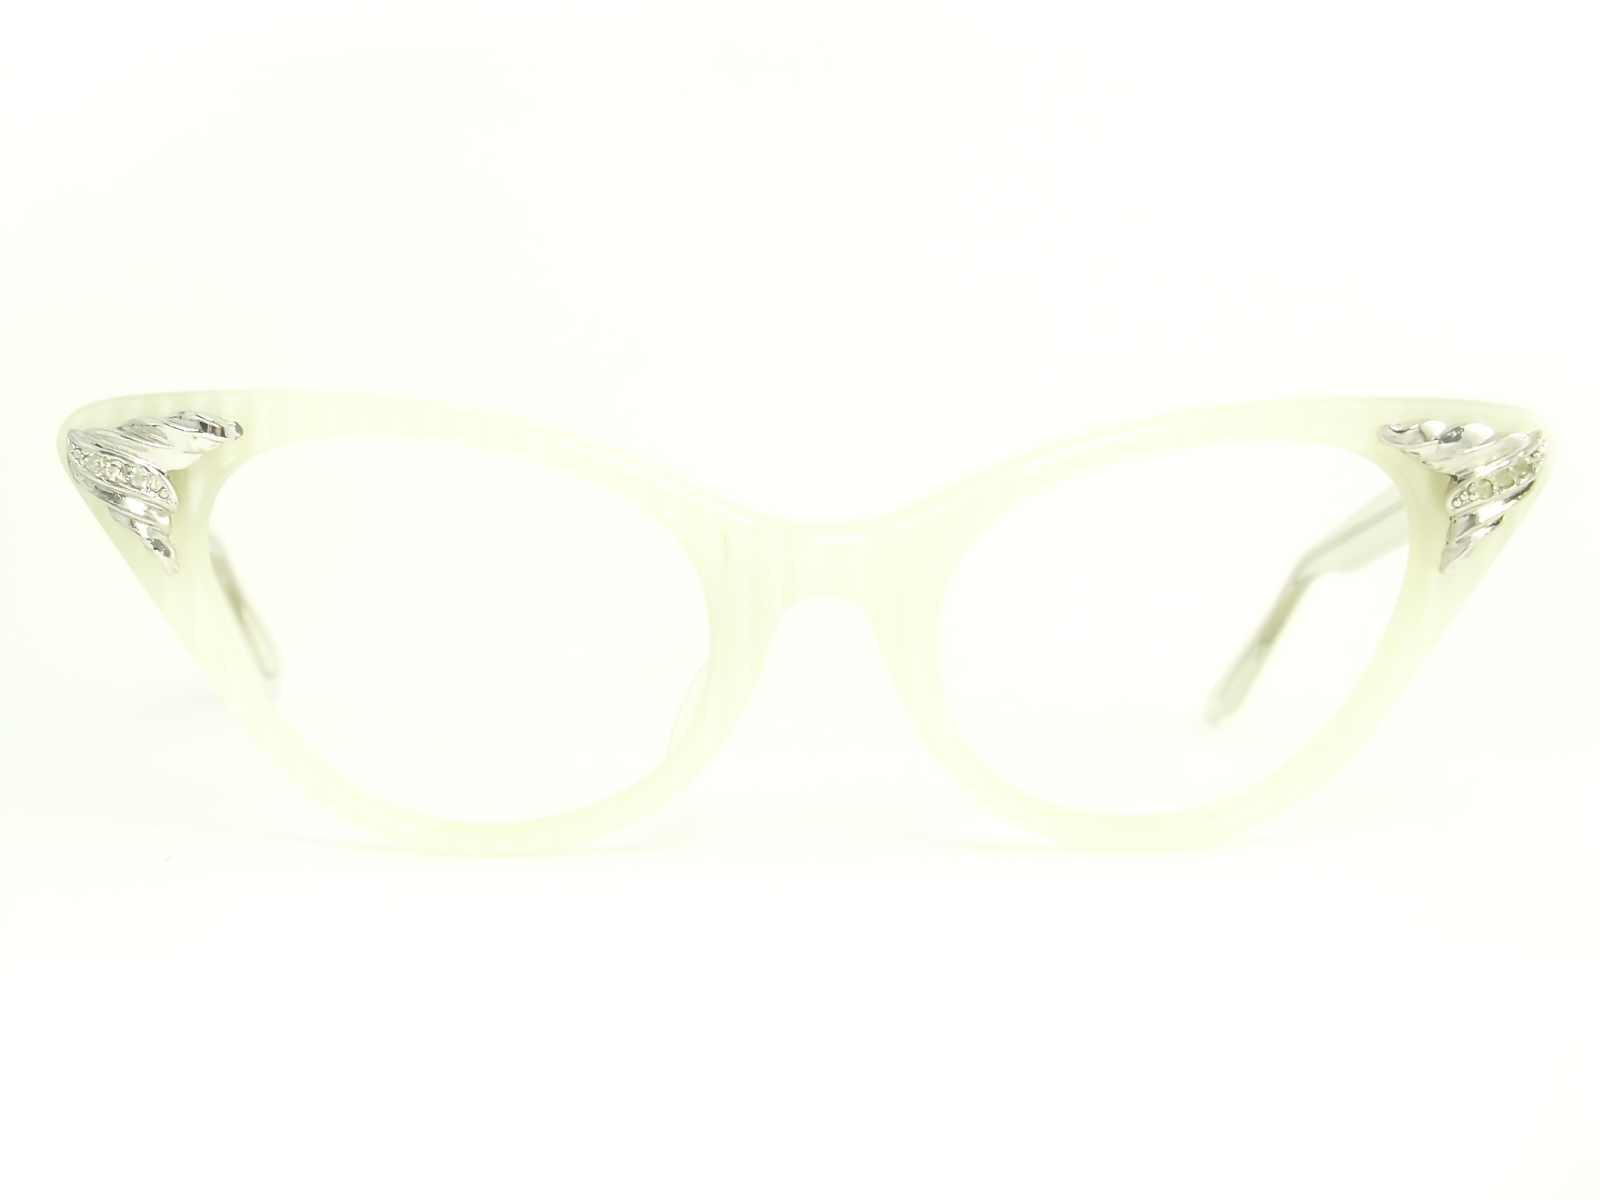 0ec51c8fc2 WHITE SELF STRIPING VINTAGE CAT EYE GLASSES. THE WINGS HAVE ATTACHED SILVER  DETAIL WITH CLEAR STONES. THE ARMS ARE PEARL WHITE. HAVE NOT BEEN USED THEY  ARE ...